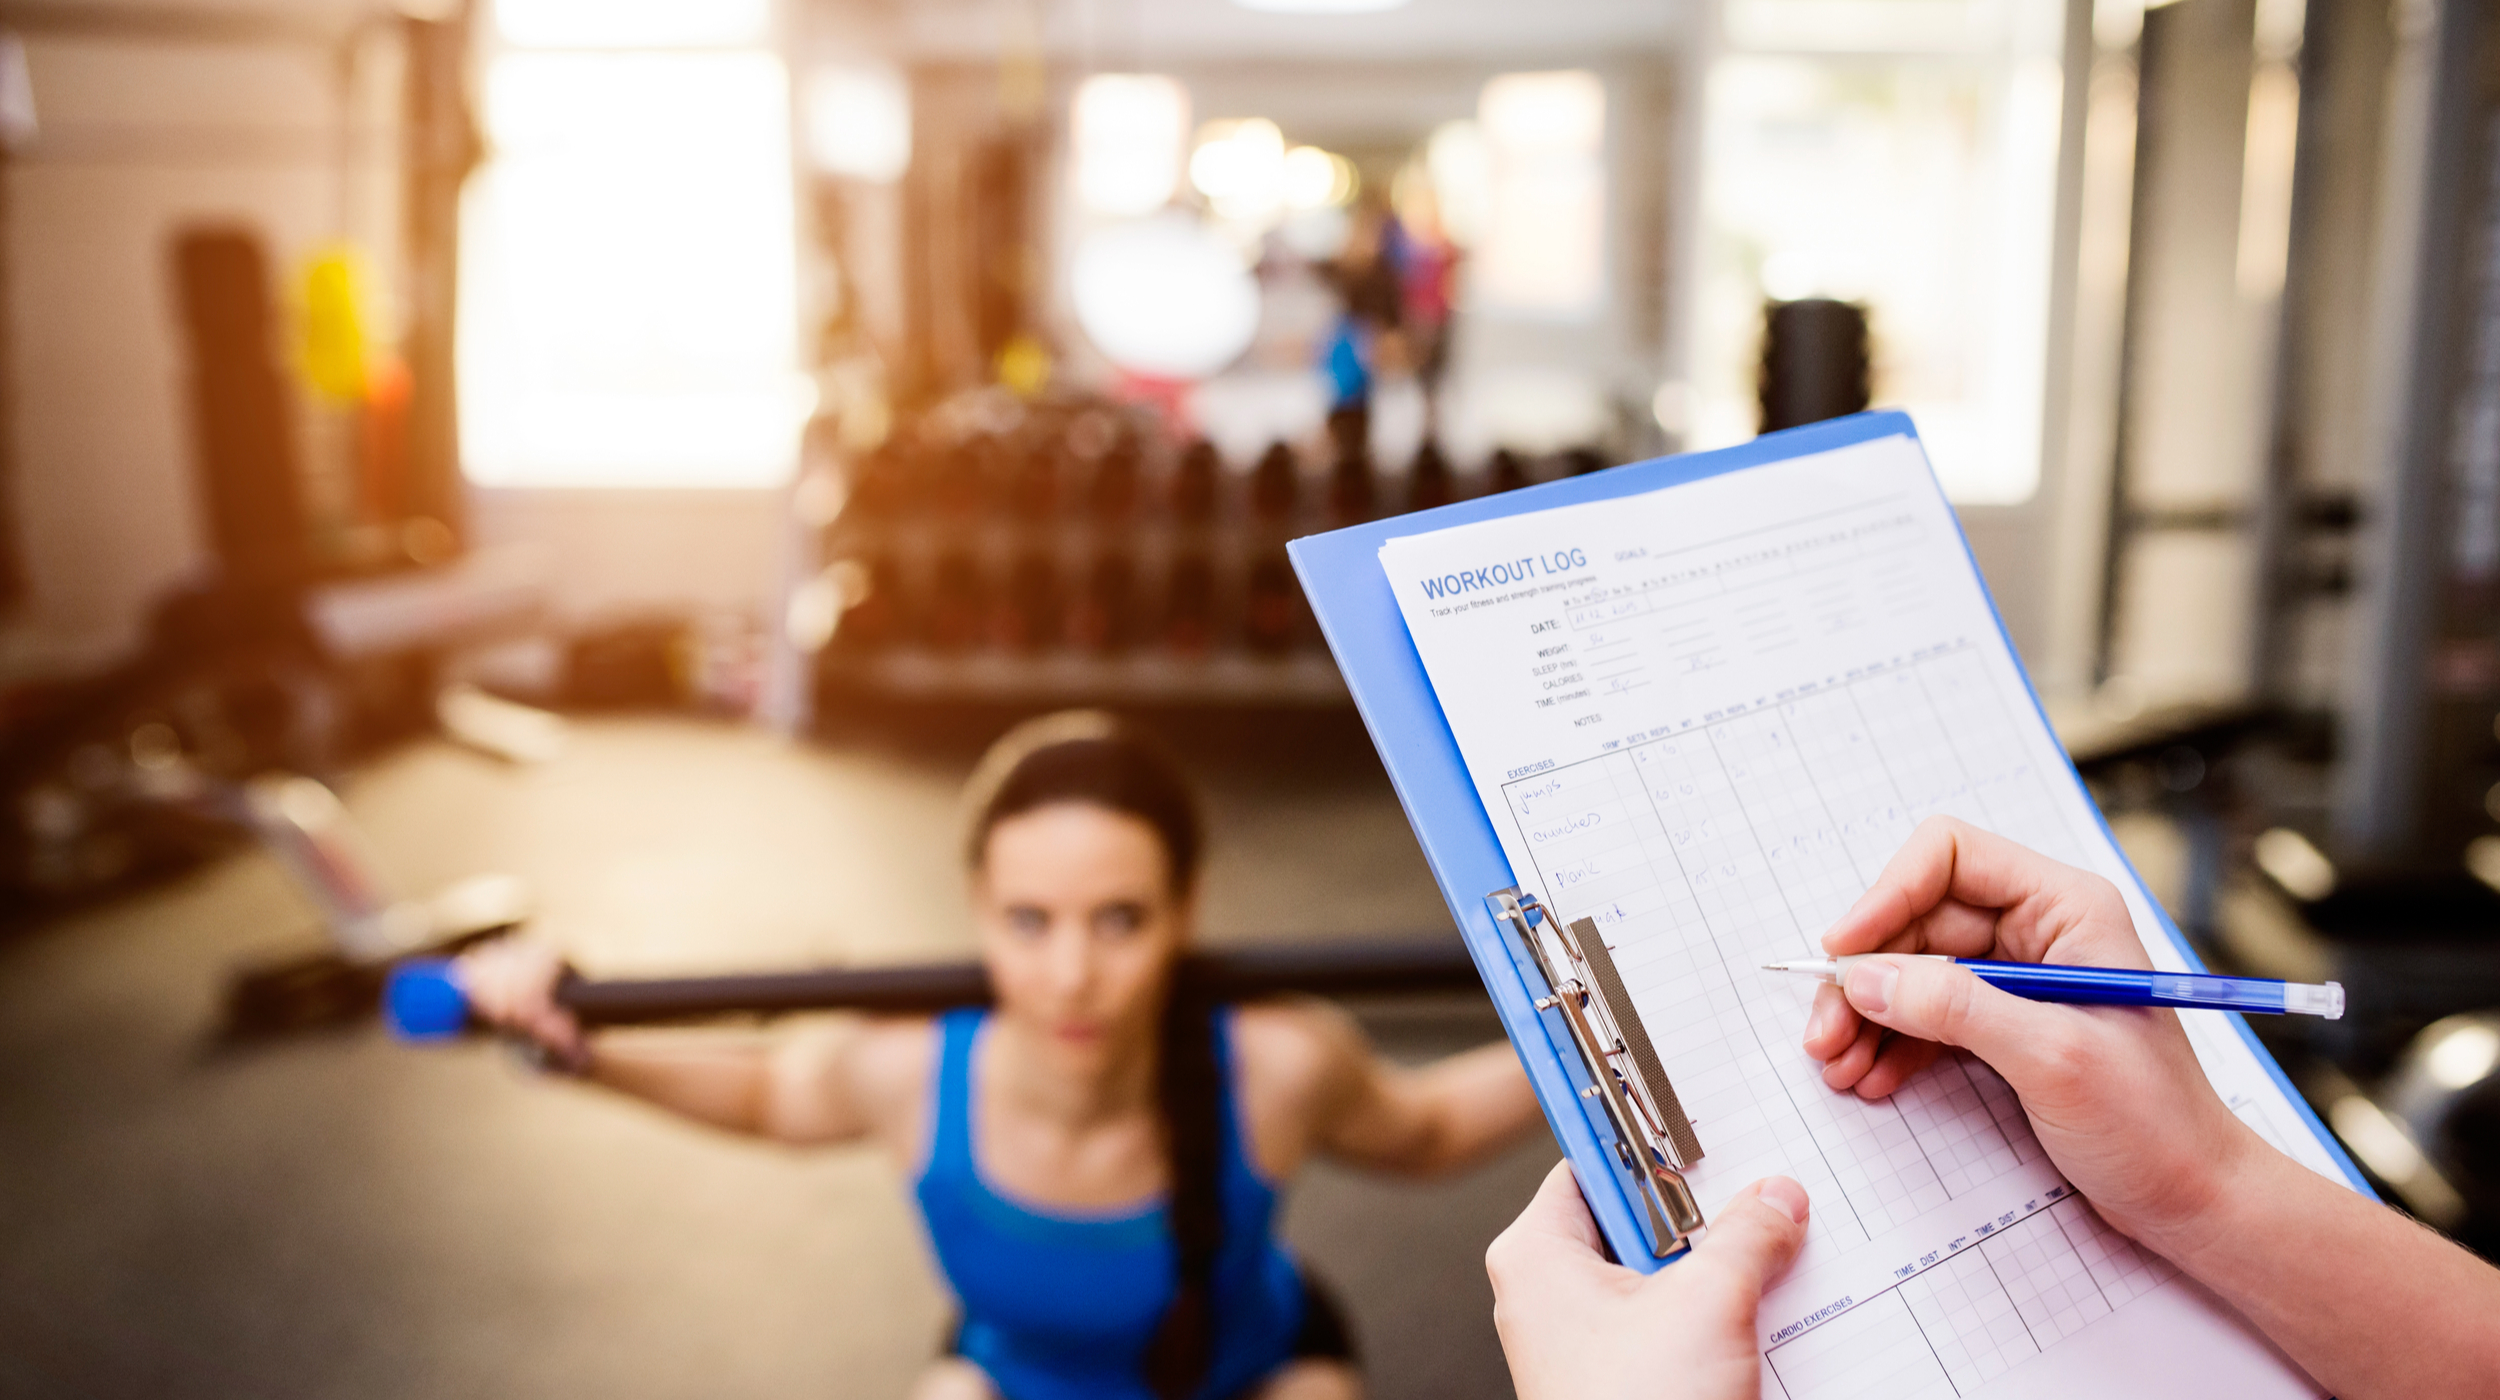 Top 5 Mistakes Personal Trainers Make